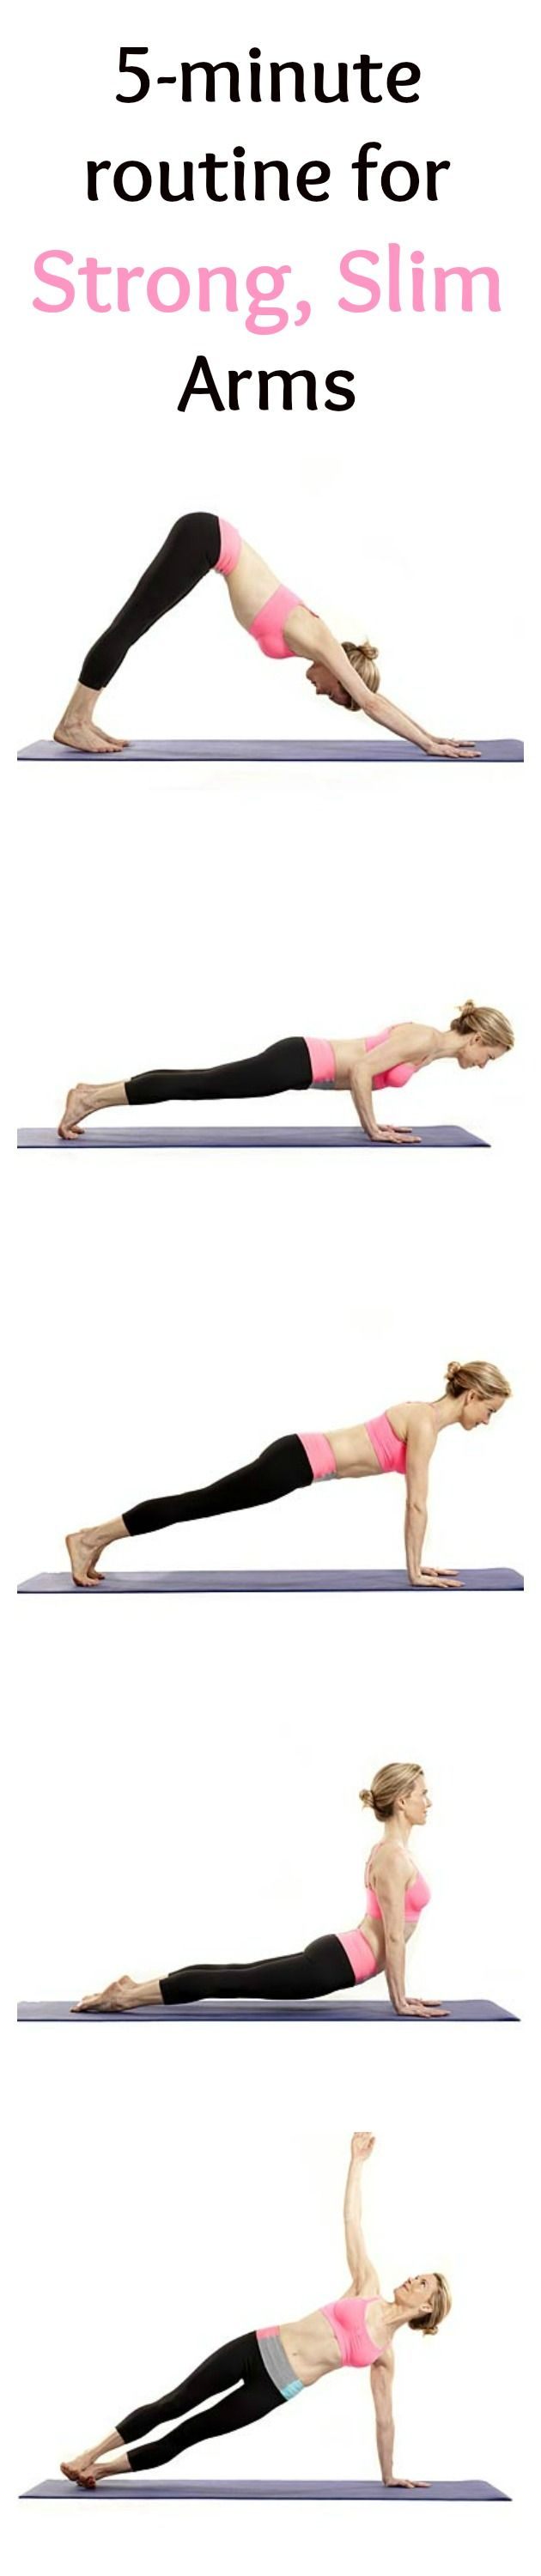 It's tank top season! Get strong, slim arms with this 5-minute yoga routine. | Health.com